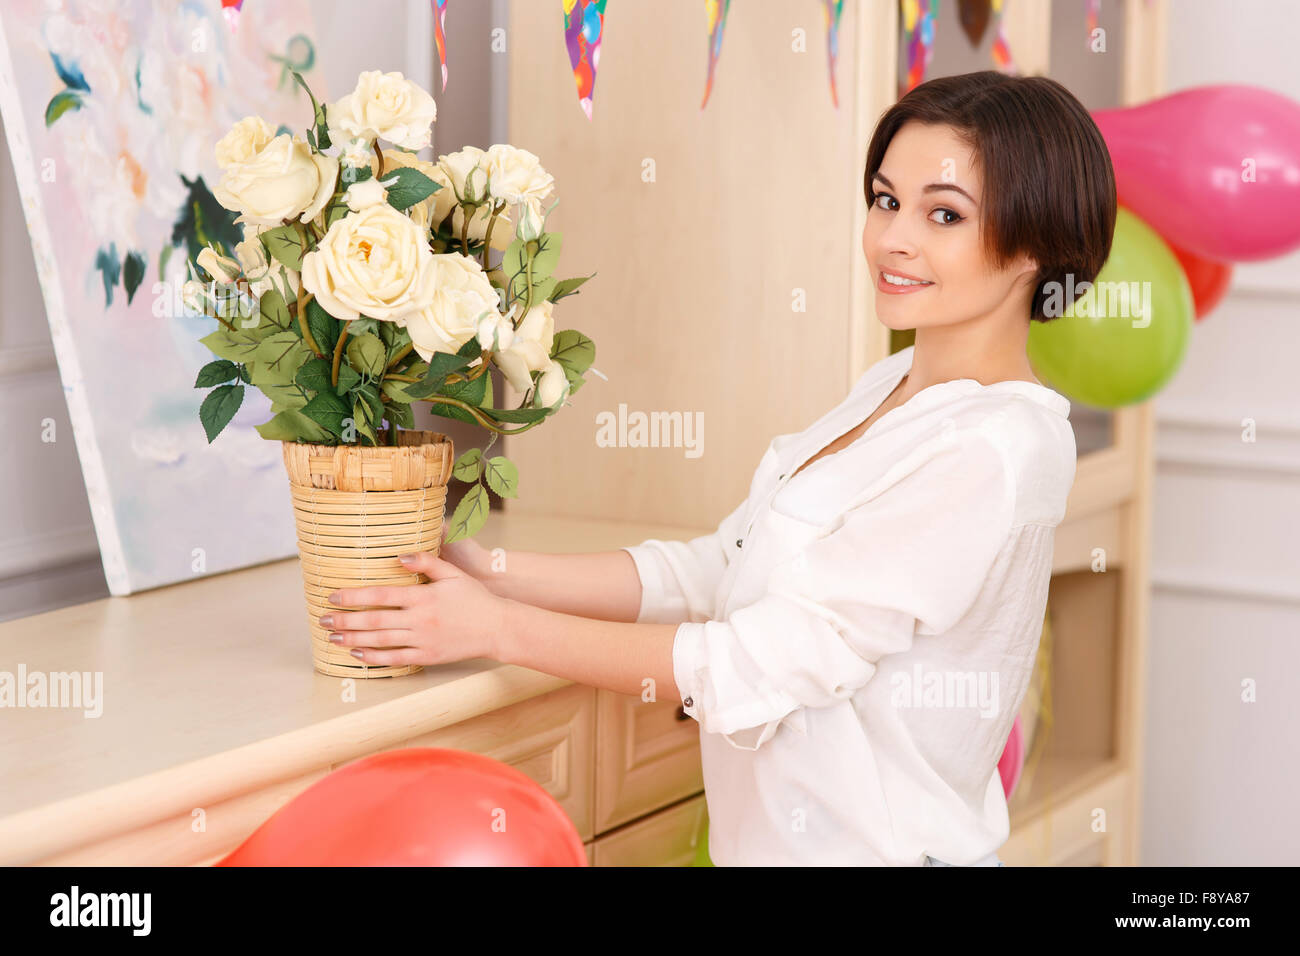 Young girl decorating her apartment for birthday party - Stock Image